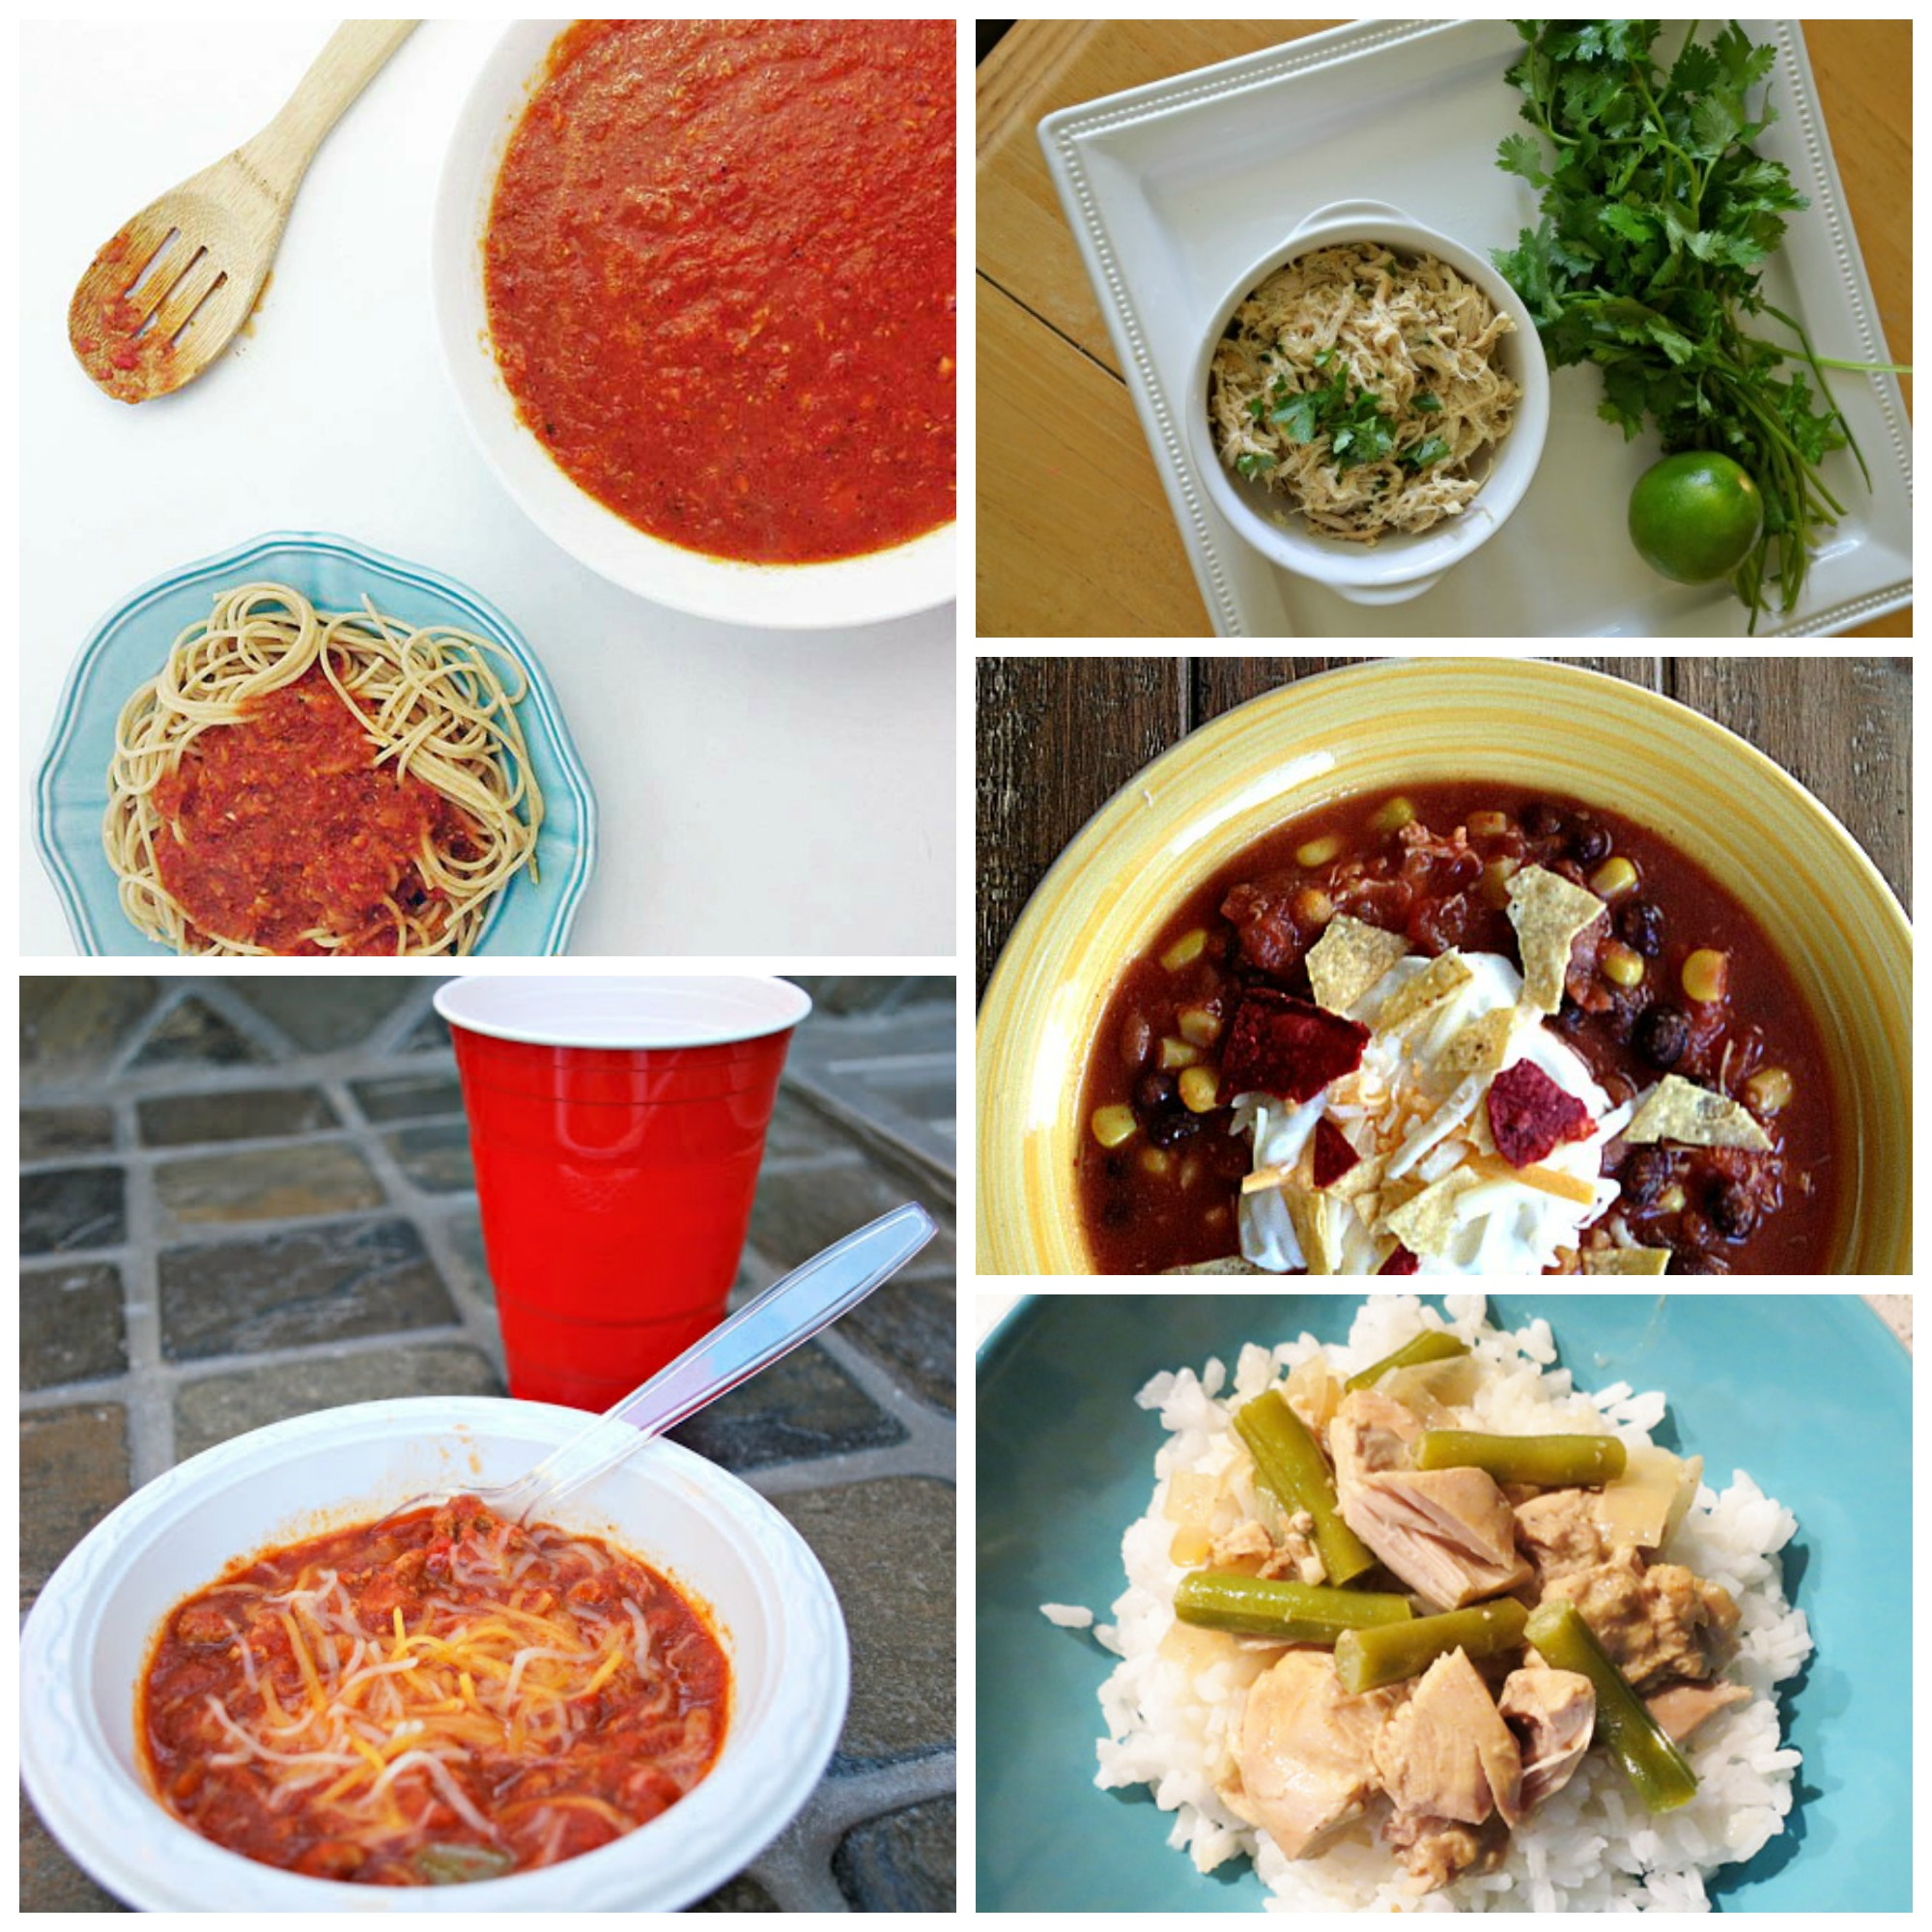 Healthy crockpot meals that are filling like this crock pot spaghetti, taco soup, and veggies and rice.